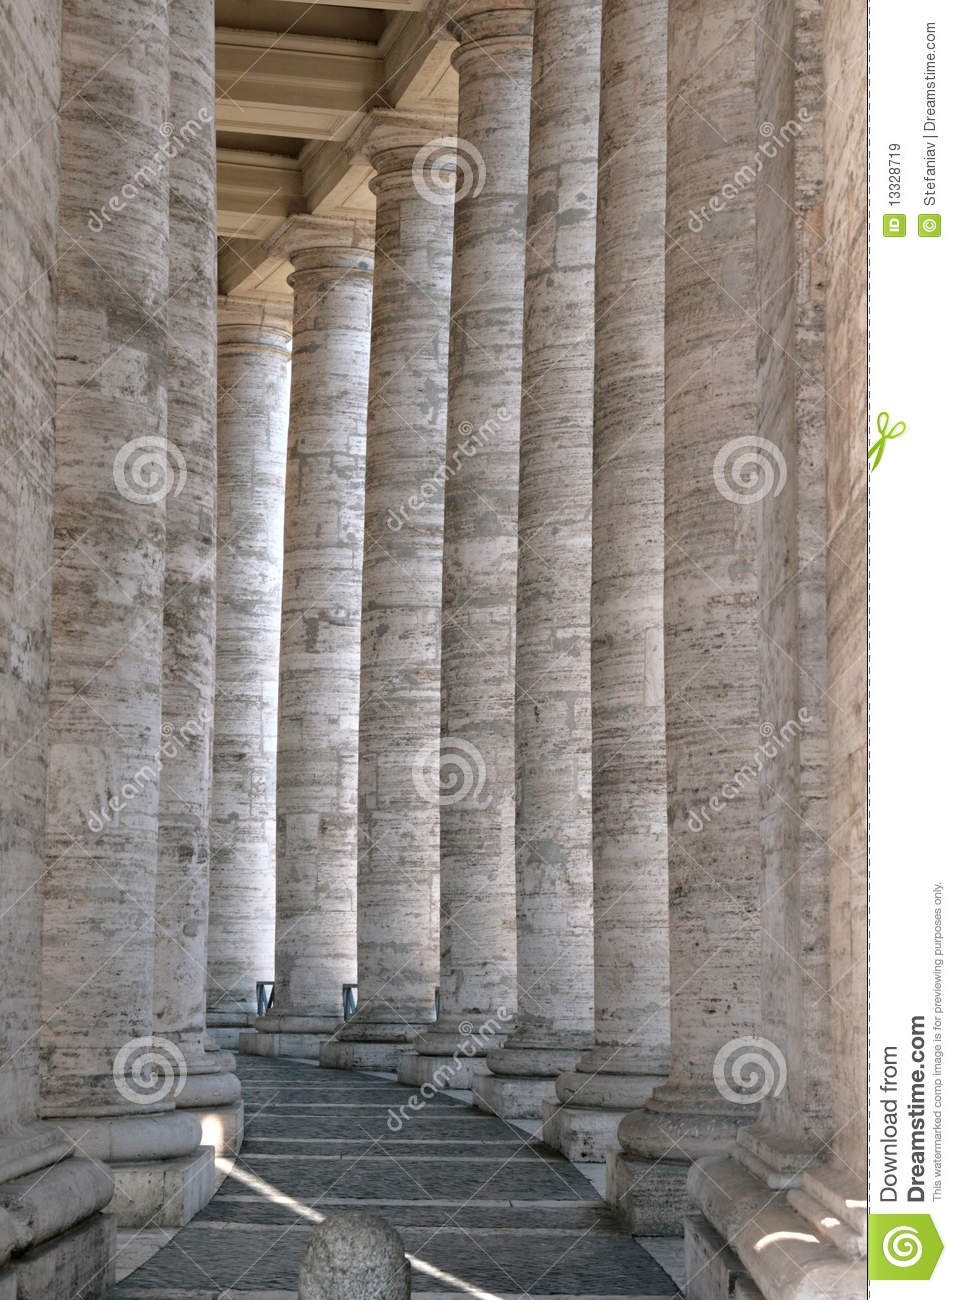 St. Peter s colonnade